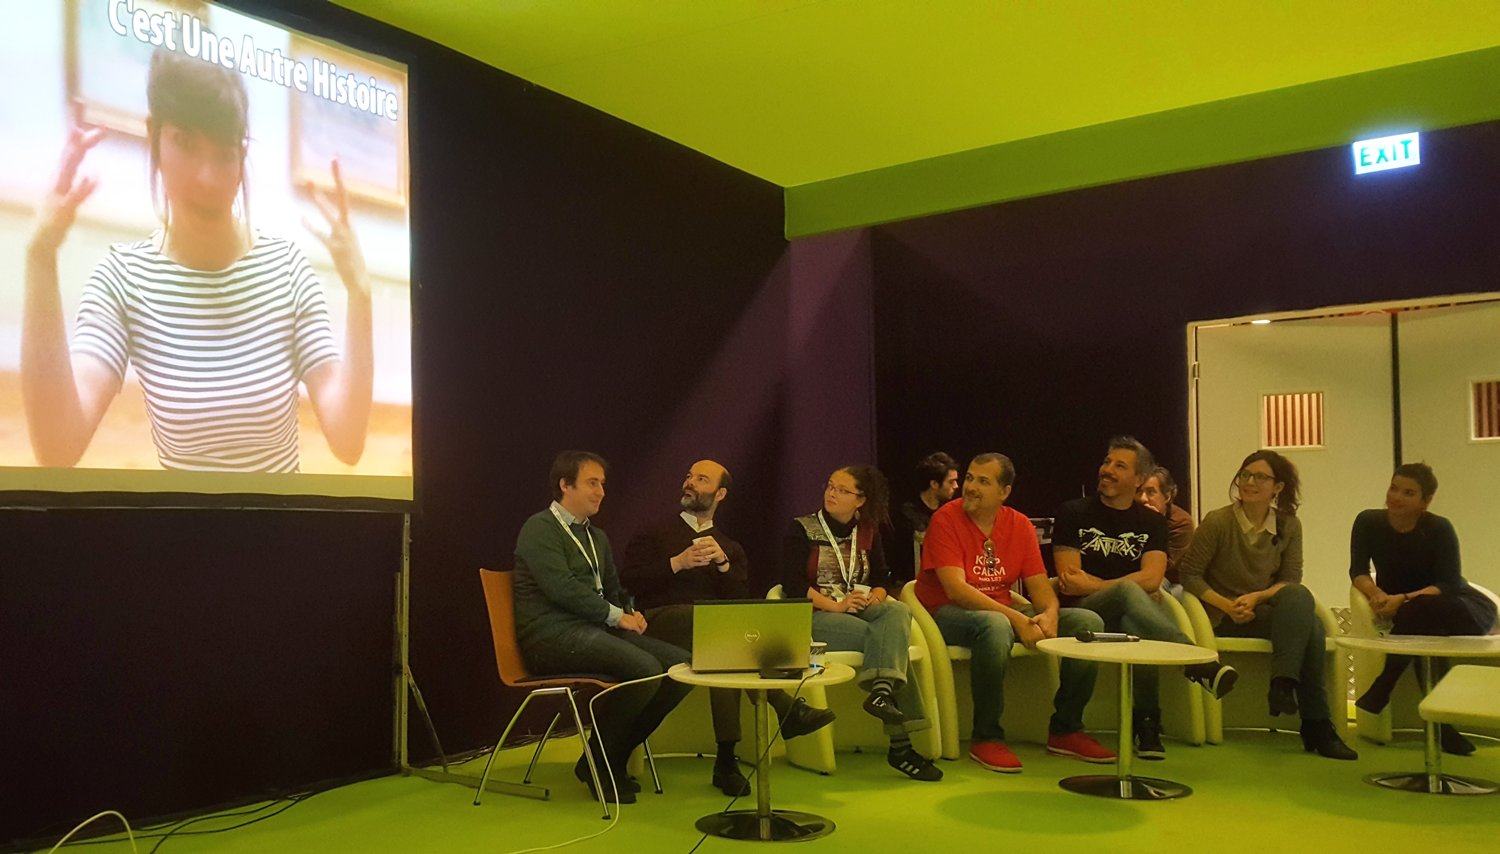 6 vulgarisateurs ouvrent la table-ronde. #parisedweek #educatectice https://t.co/1rsBhYhE3c